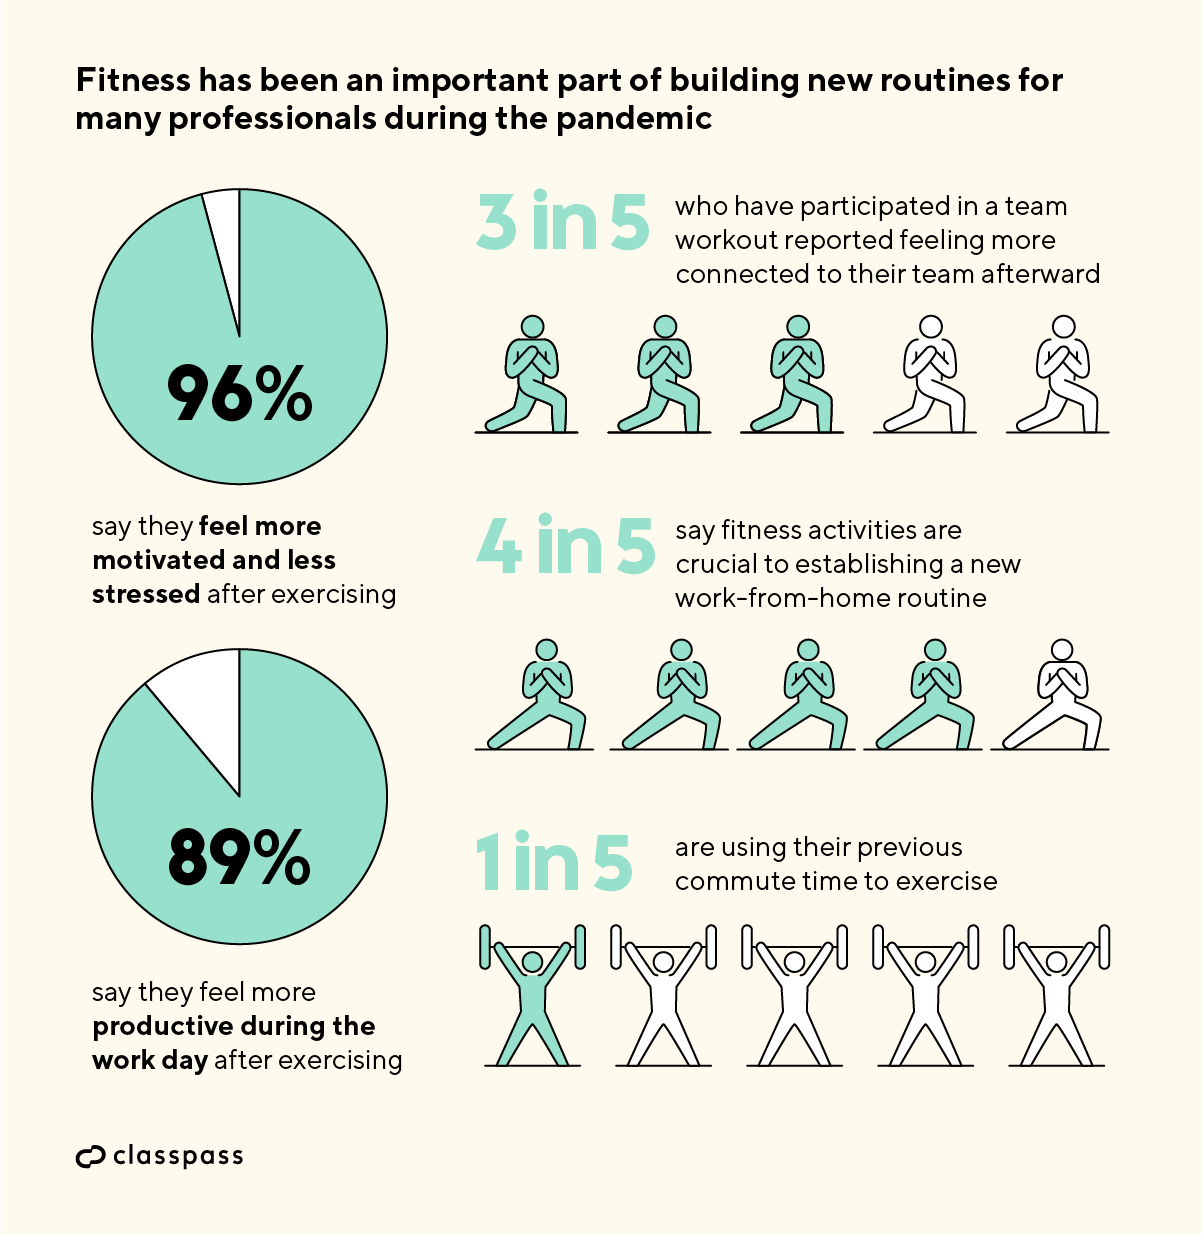 fitness-is-part-of-new-routines